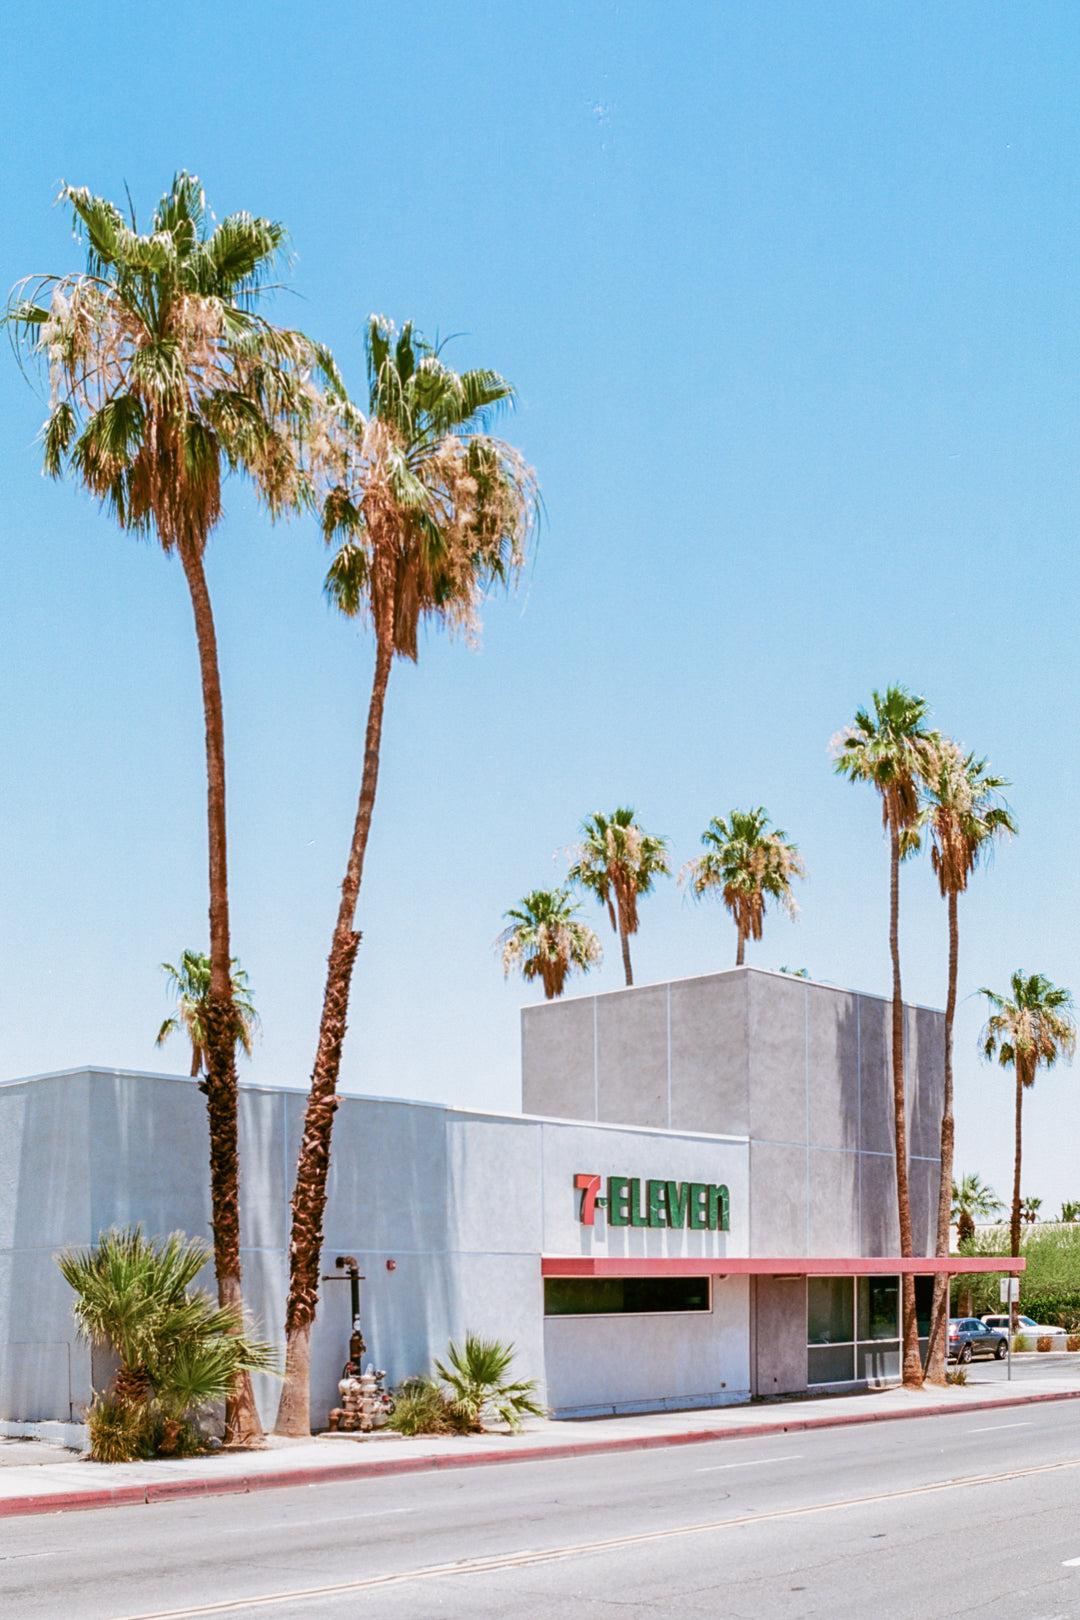 Palm Springs 7-ELEVEN